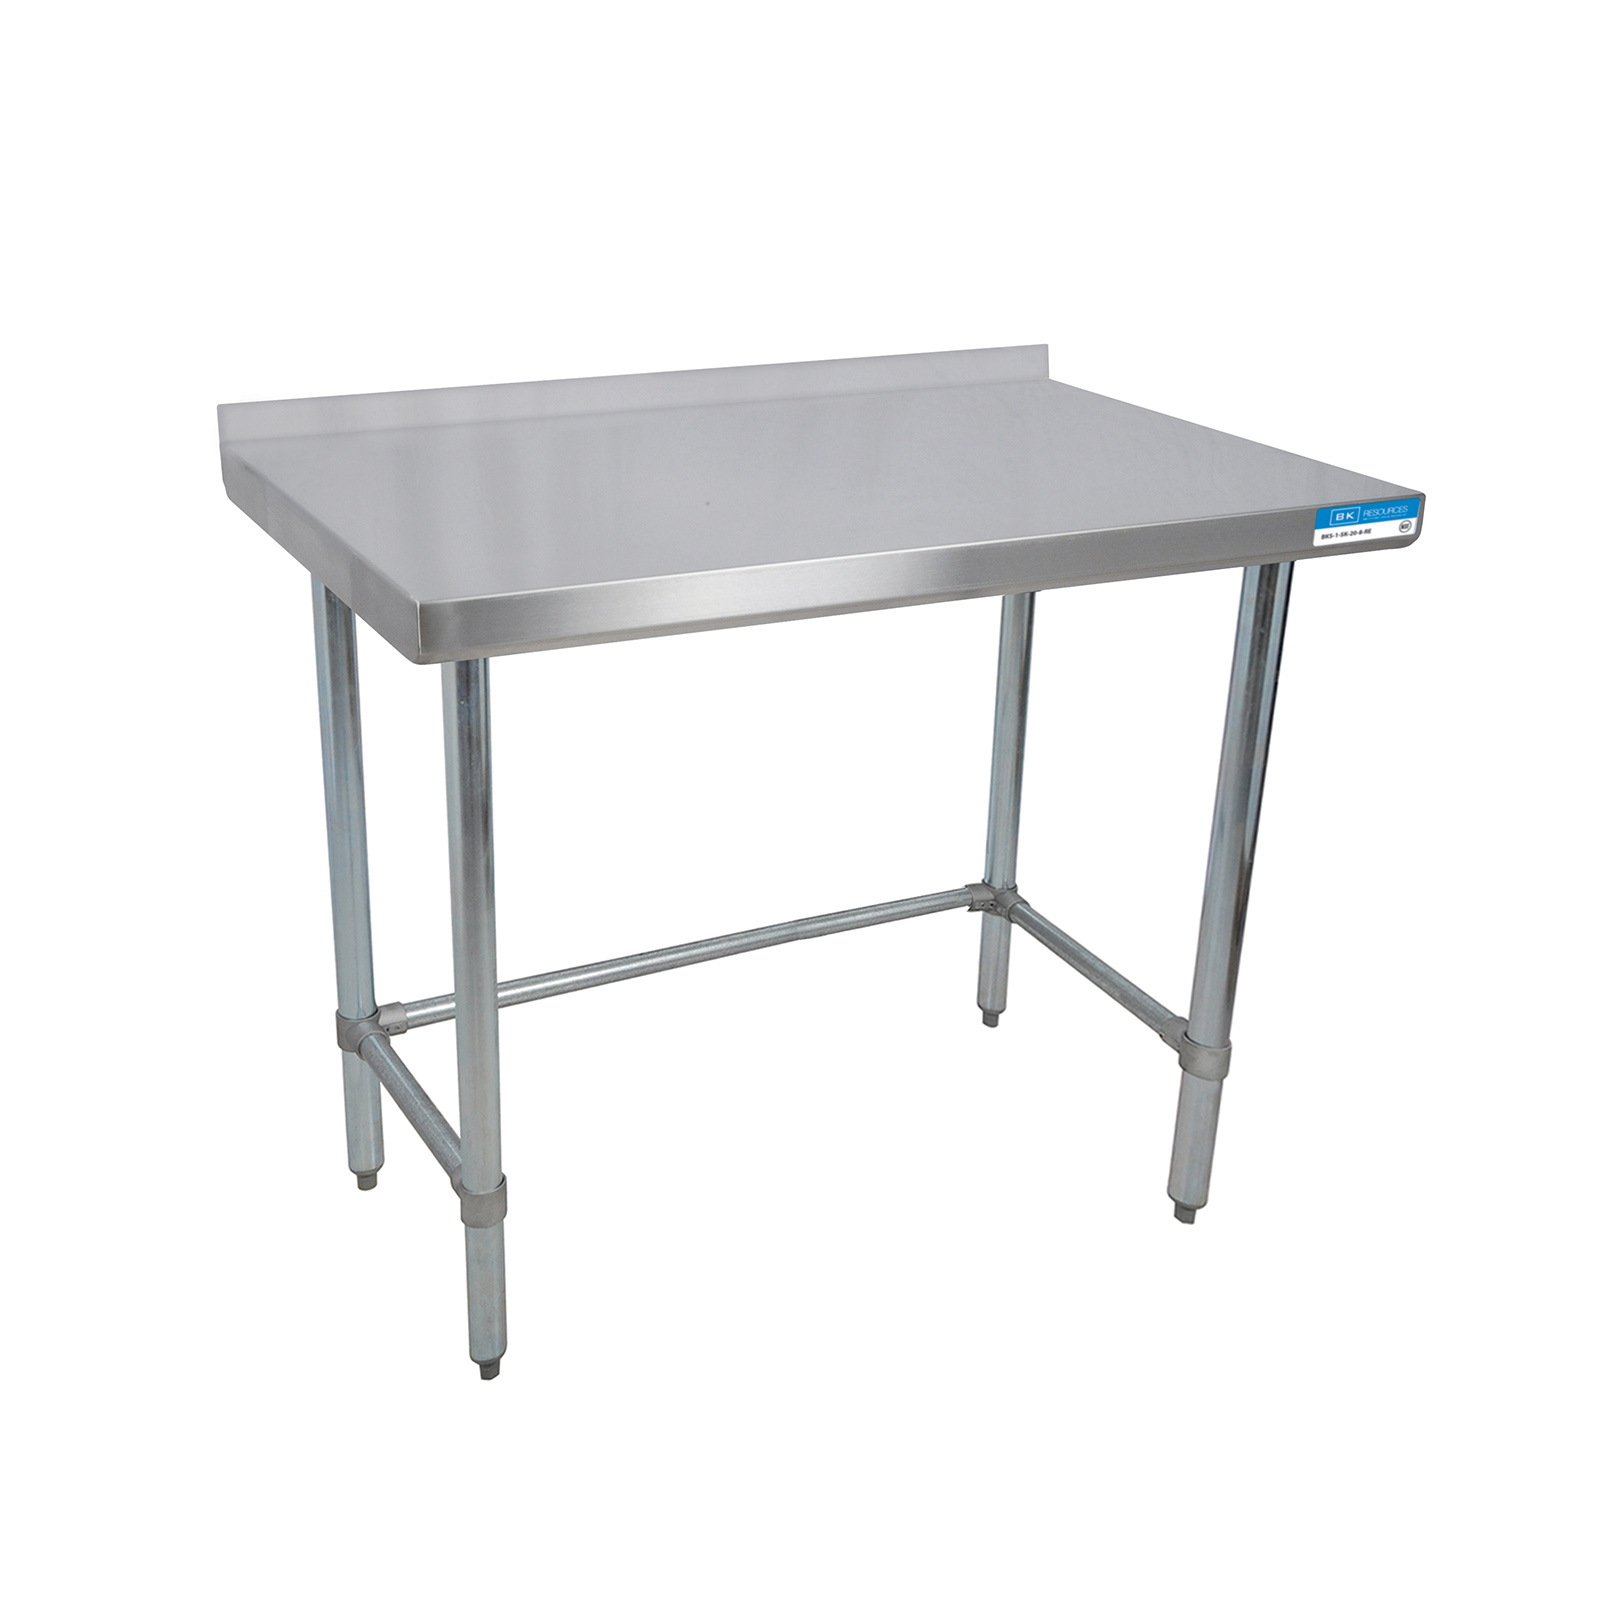 BK Resources VTTROB-3624 work table,  36